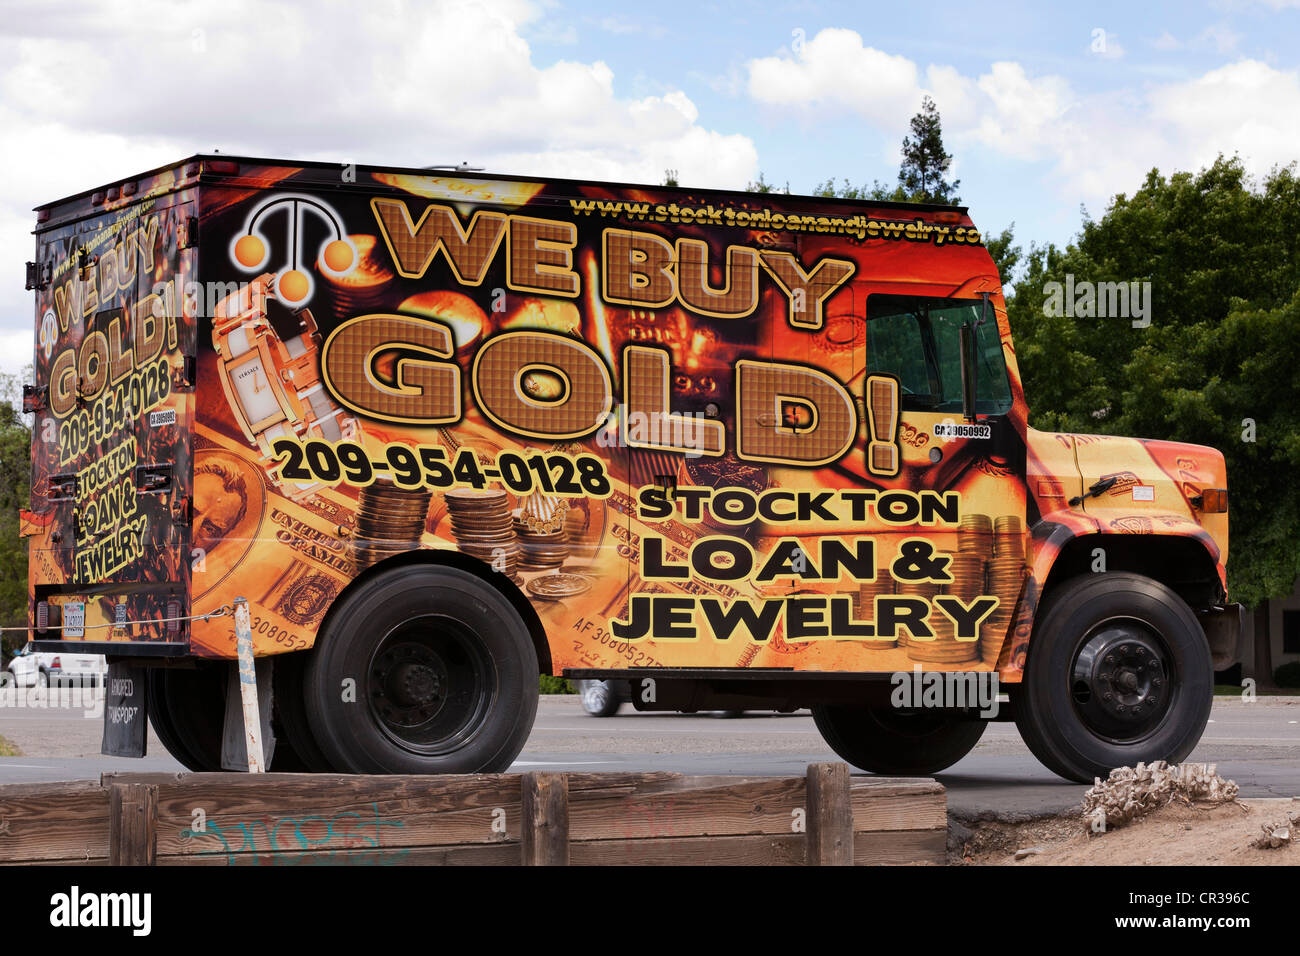 We Buy Gold ad on truck - Stock Image